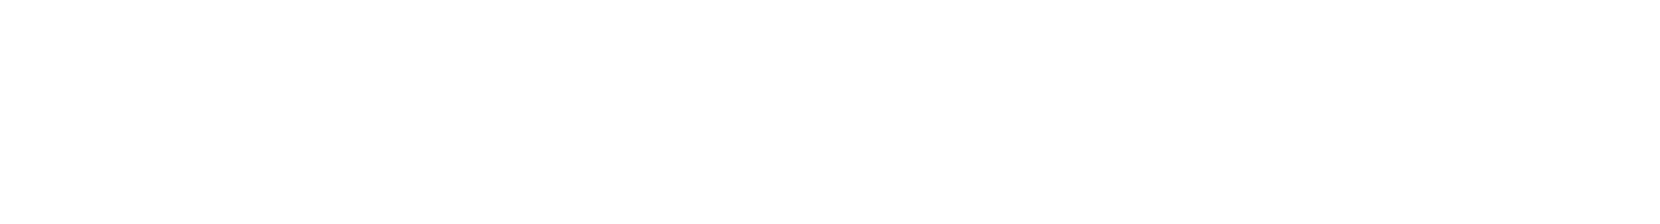 up to 25% off beds + free shipping